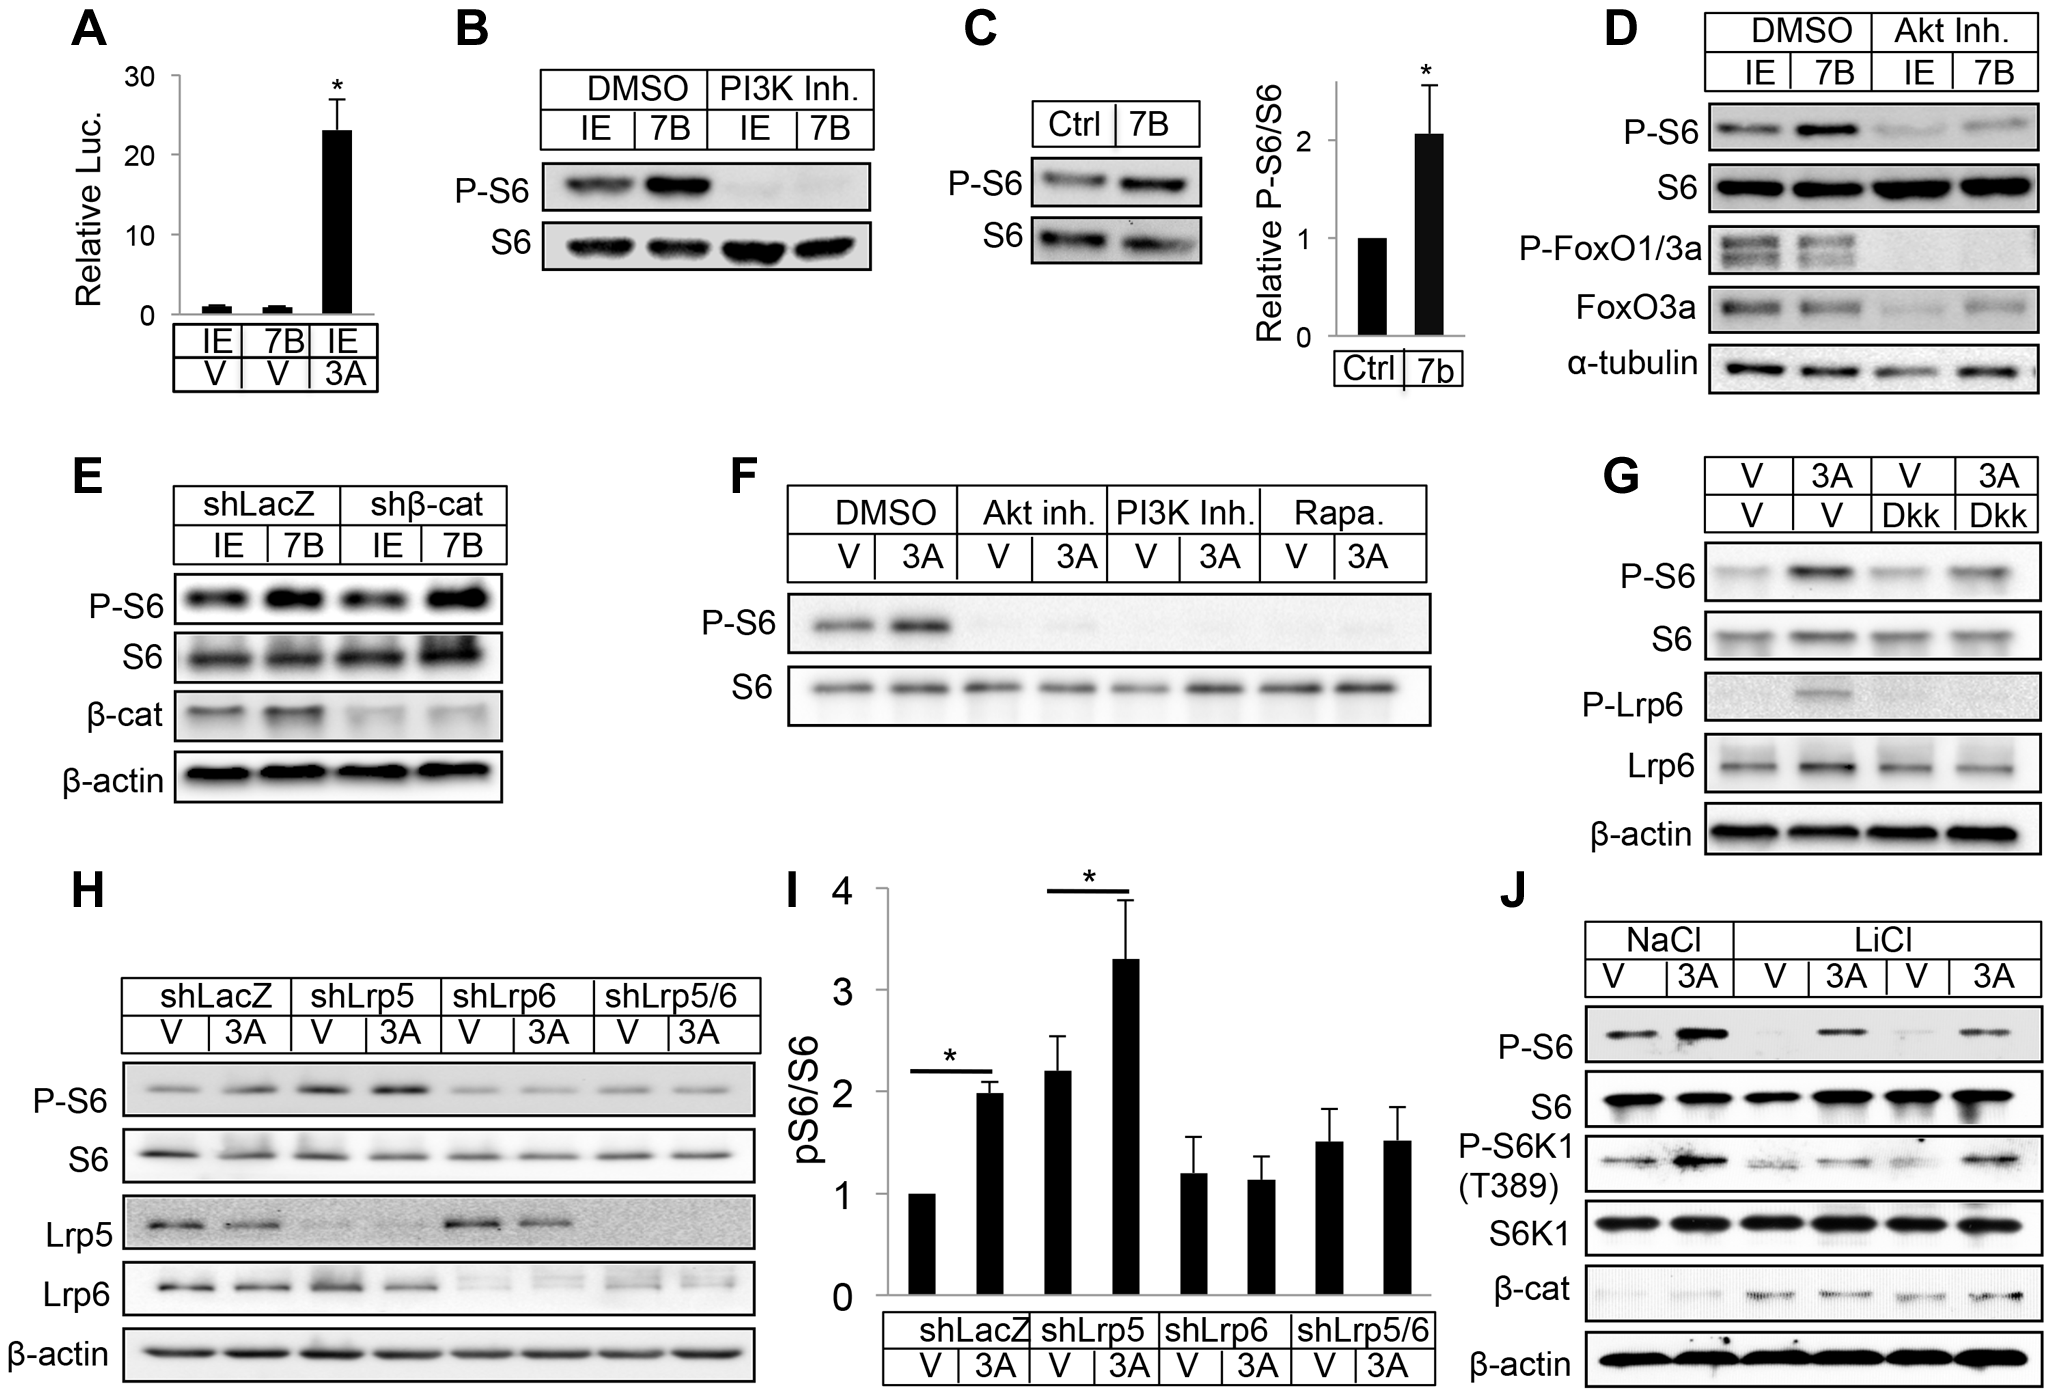 WNT7B and WNT3A activate mTORC1 signaling.